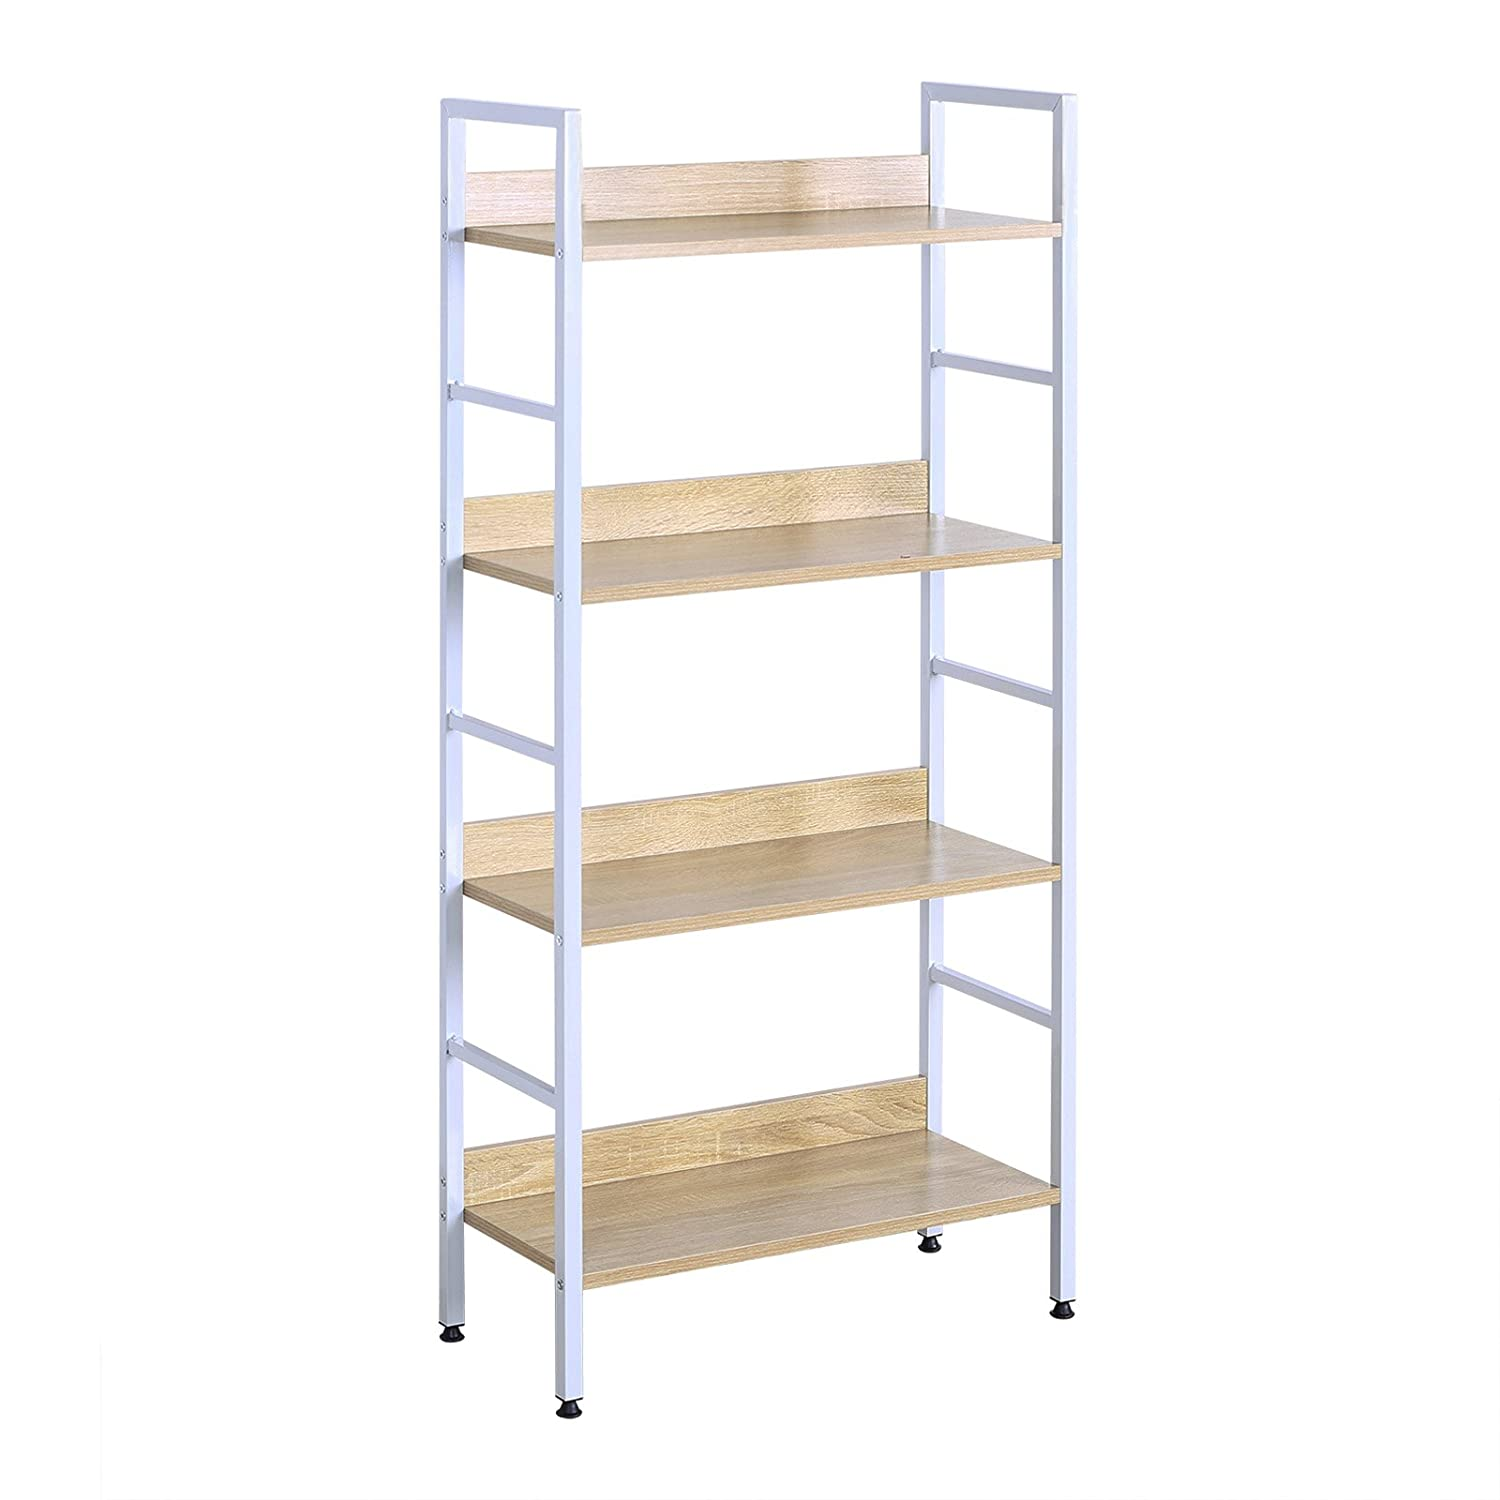 WOLTU Heavy Duty Bookcase Shelf Unit 3 Shelves Storage Rack